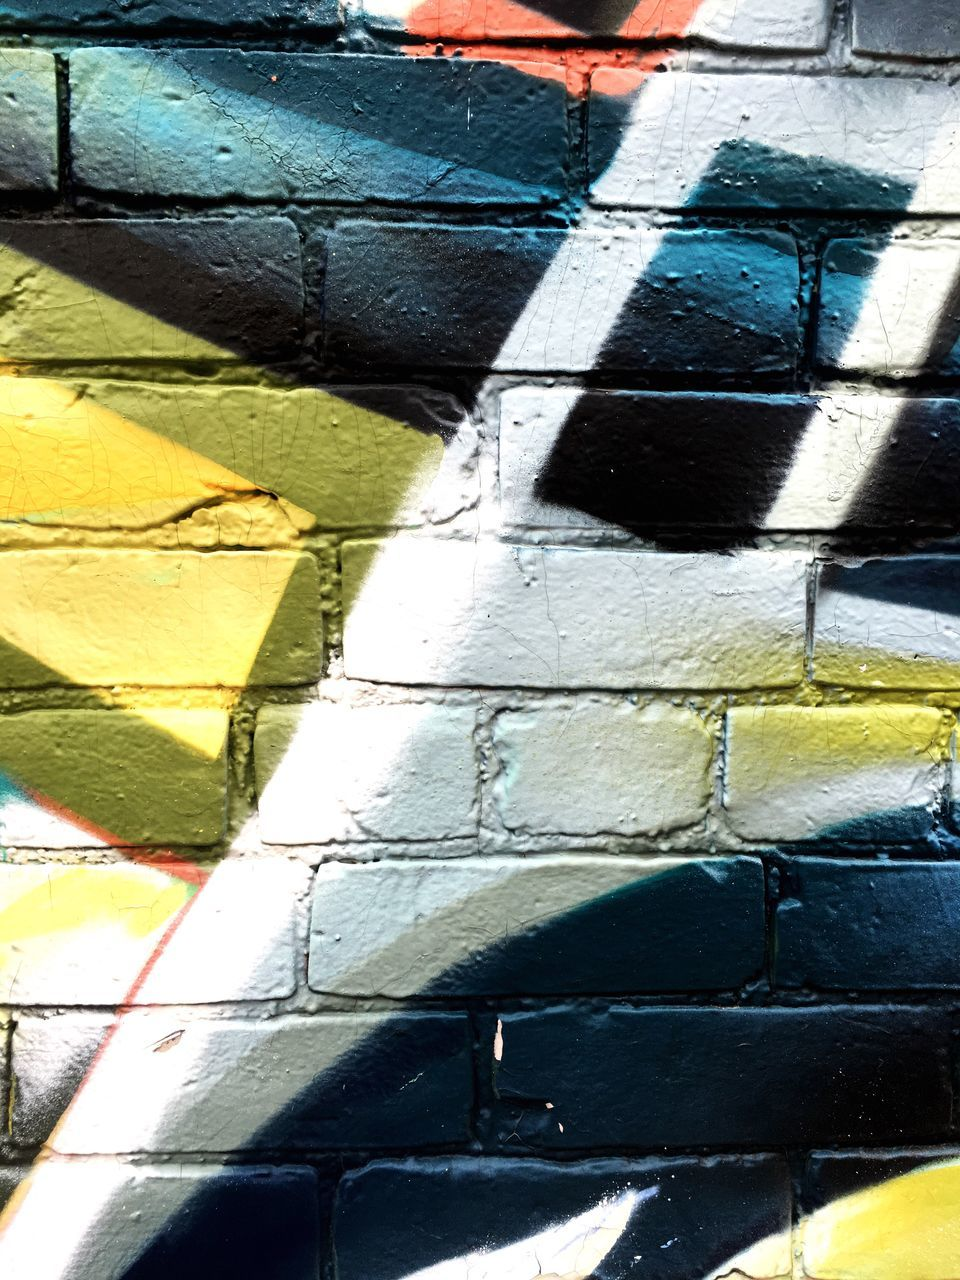 graffiti, full frame, multi colored, backgrounds, yellow, day, outdoors, street art, paint, built structure, no people, close-up, architecture, aerosol can